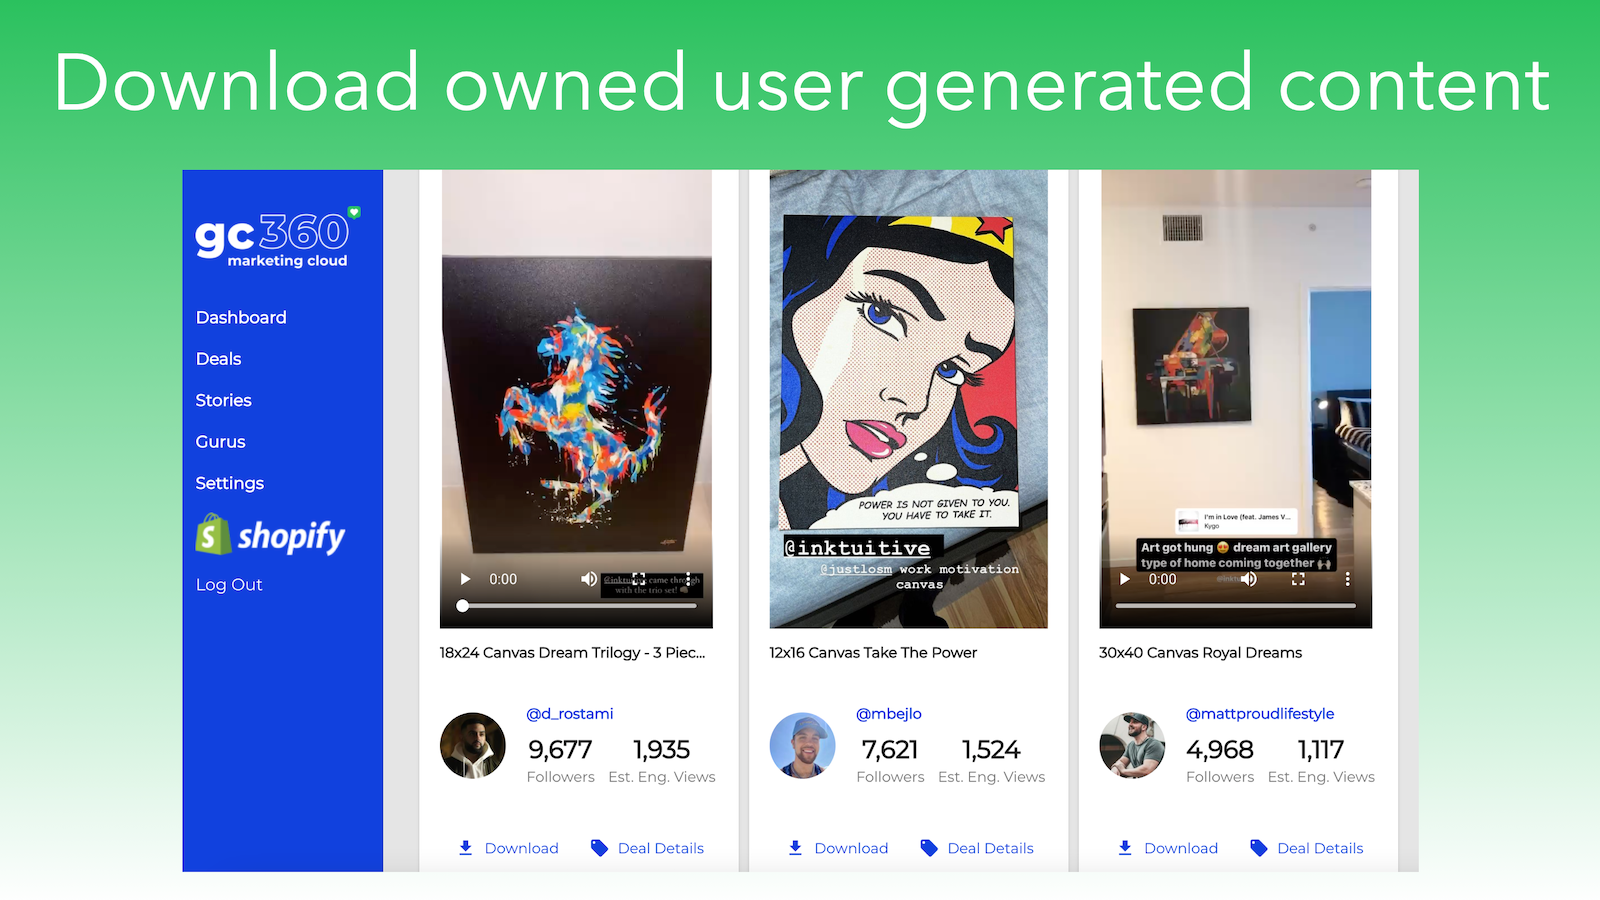 Download user generated content that you own the rights to